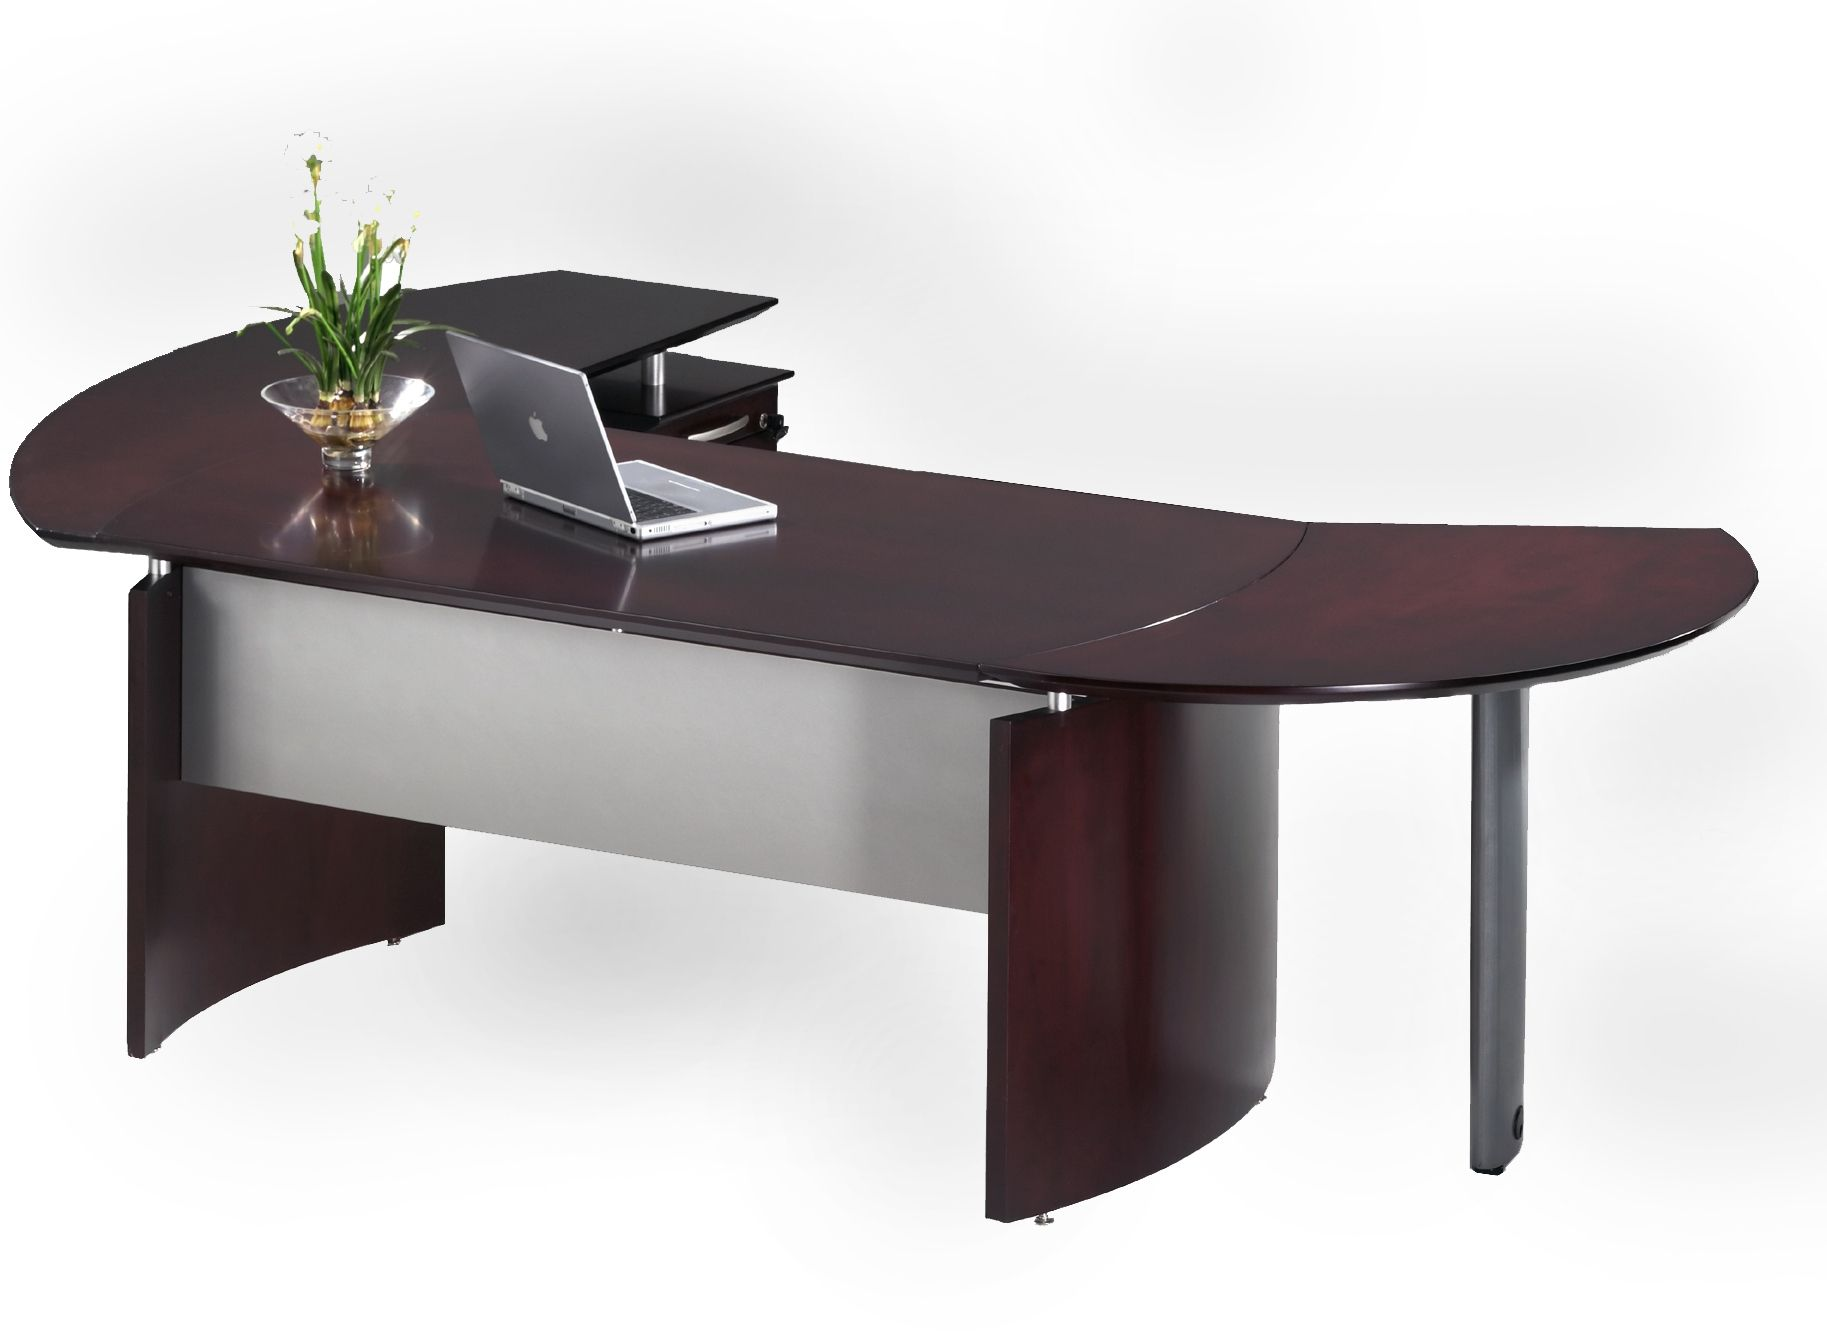 Modern L Black Shaped Desk | Contemporary desks | Pinterest ...